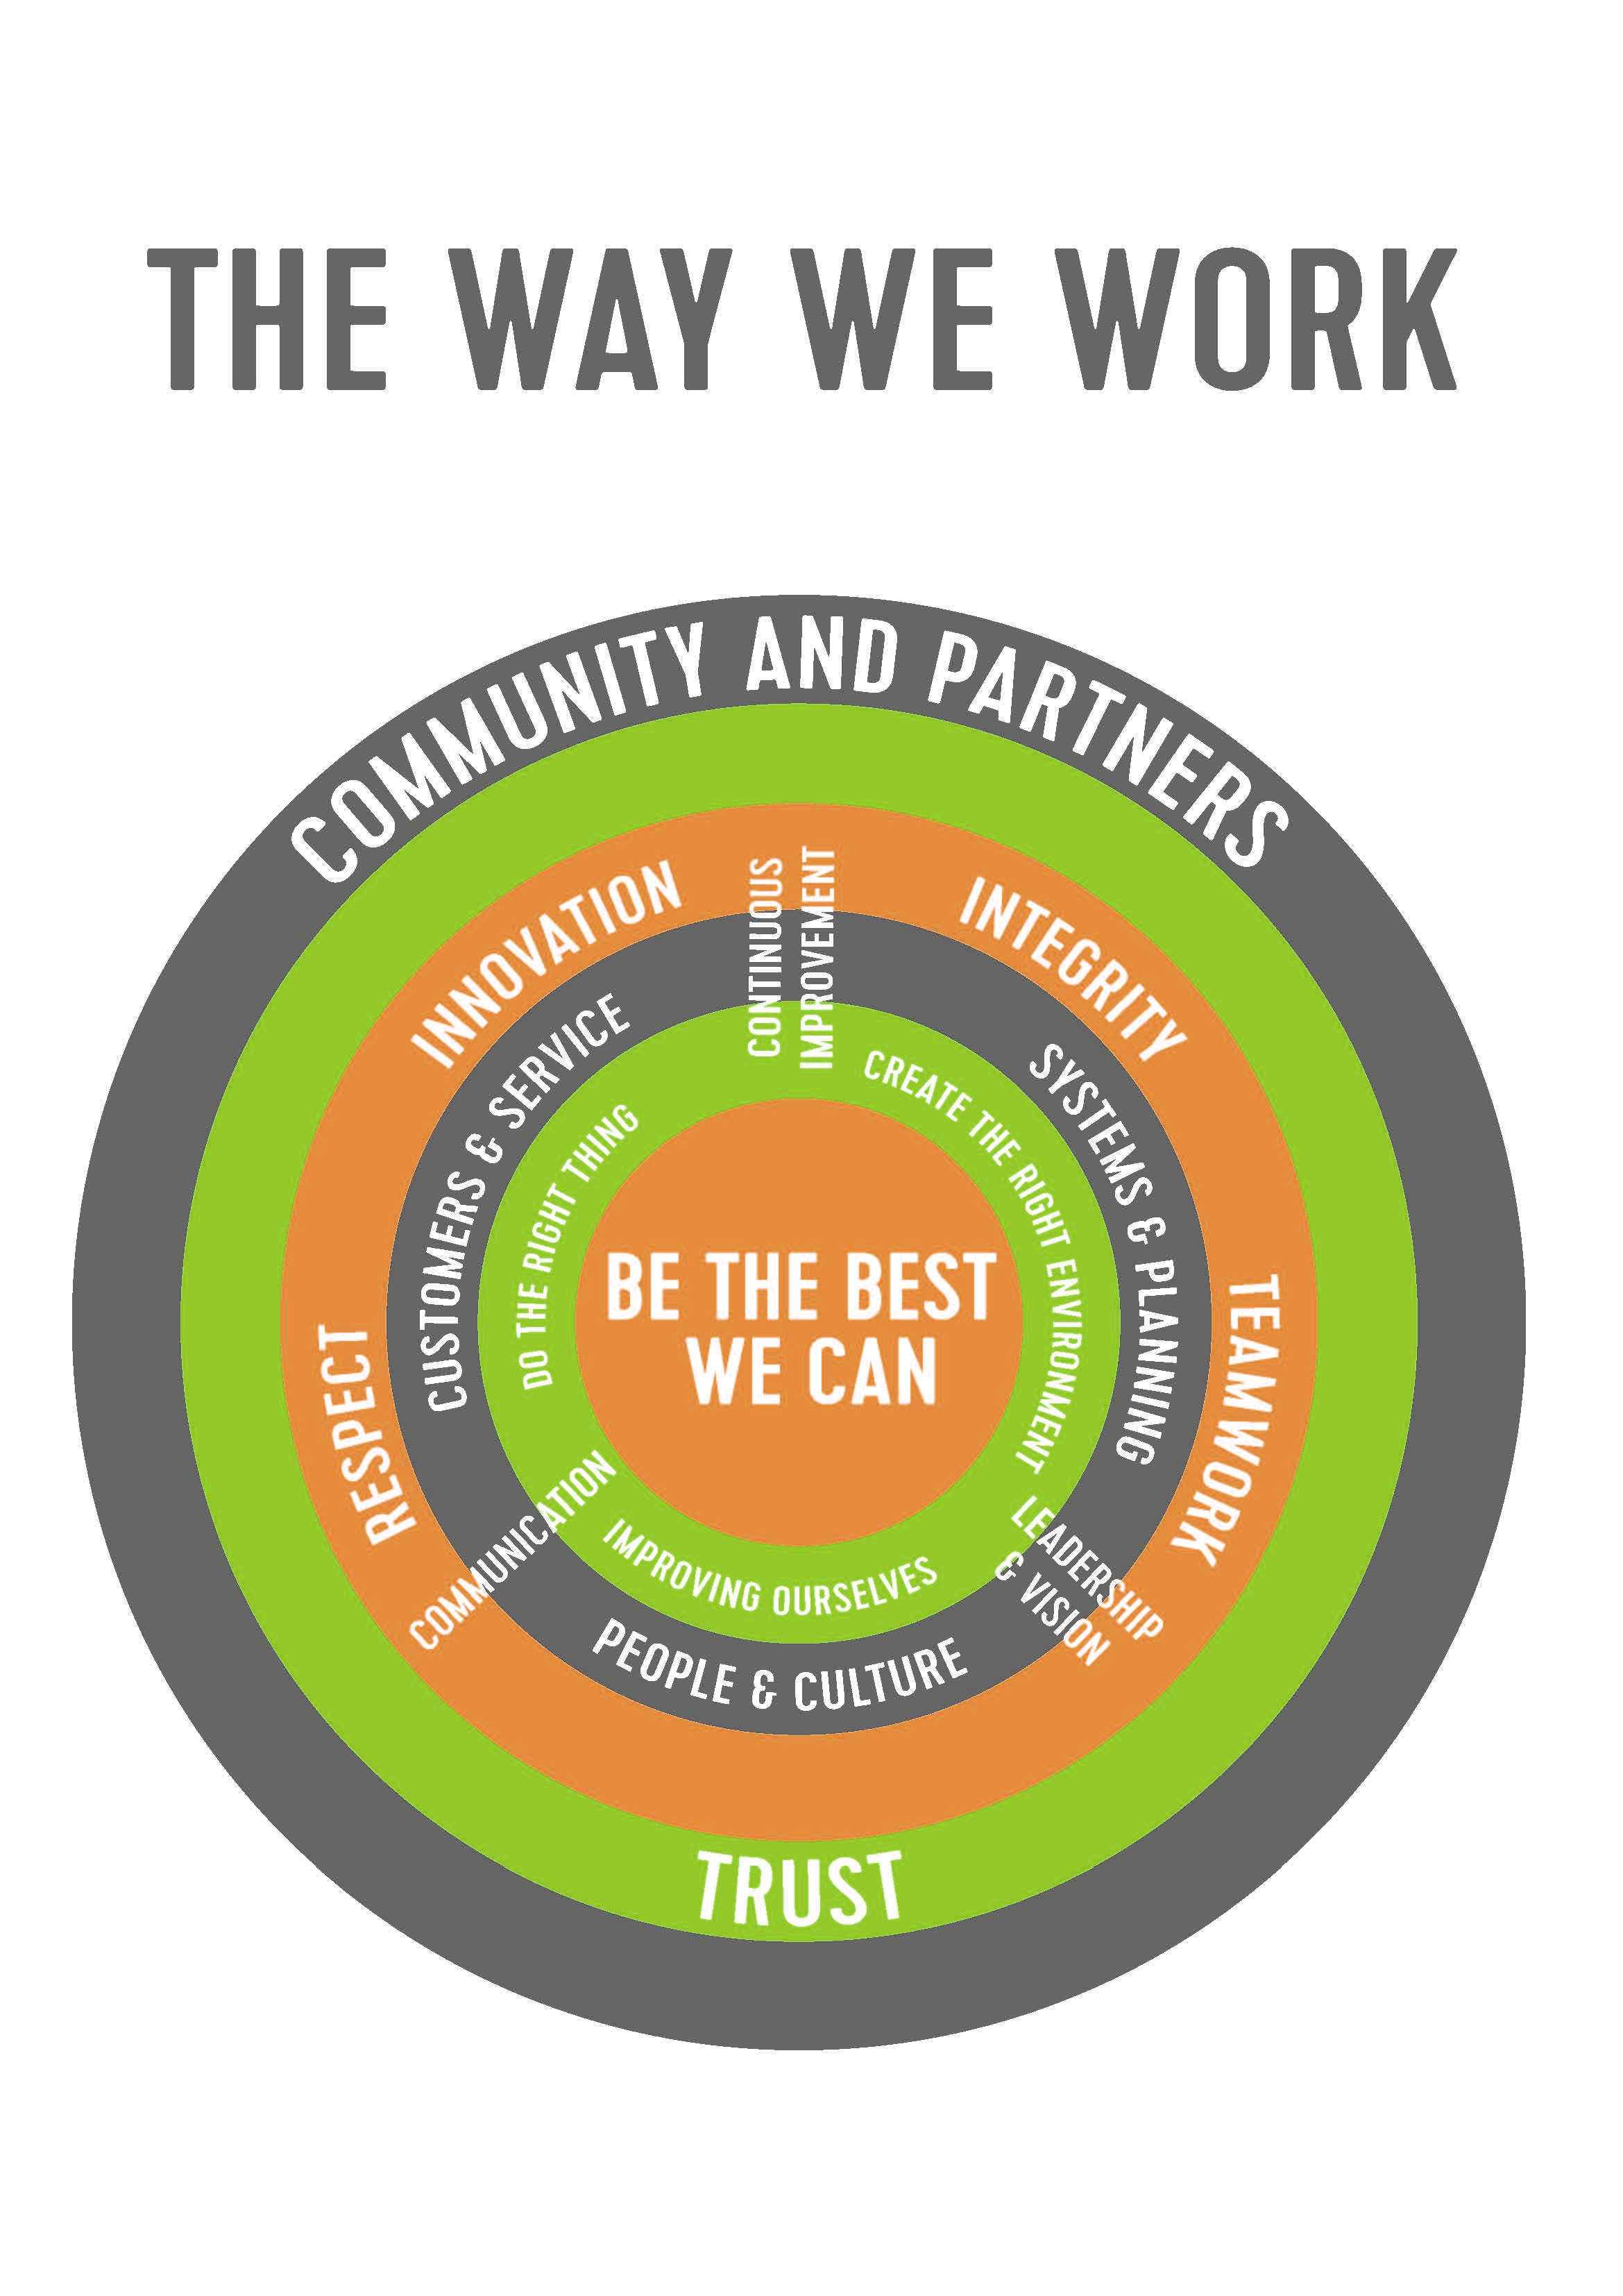 The Way We Work poster